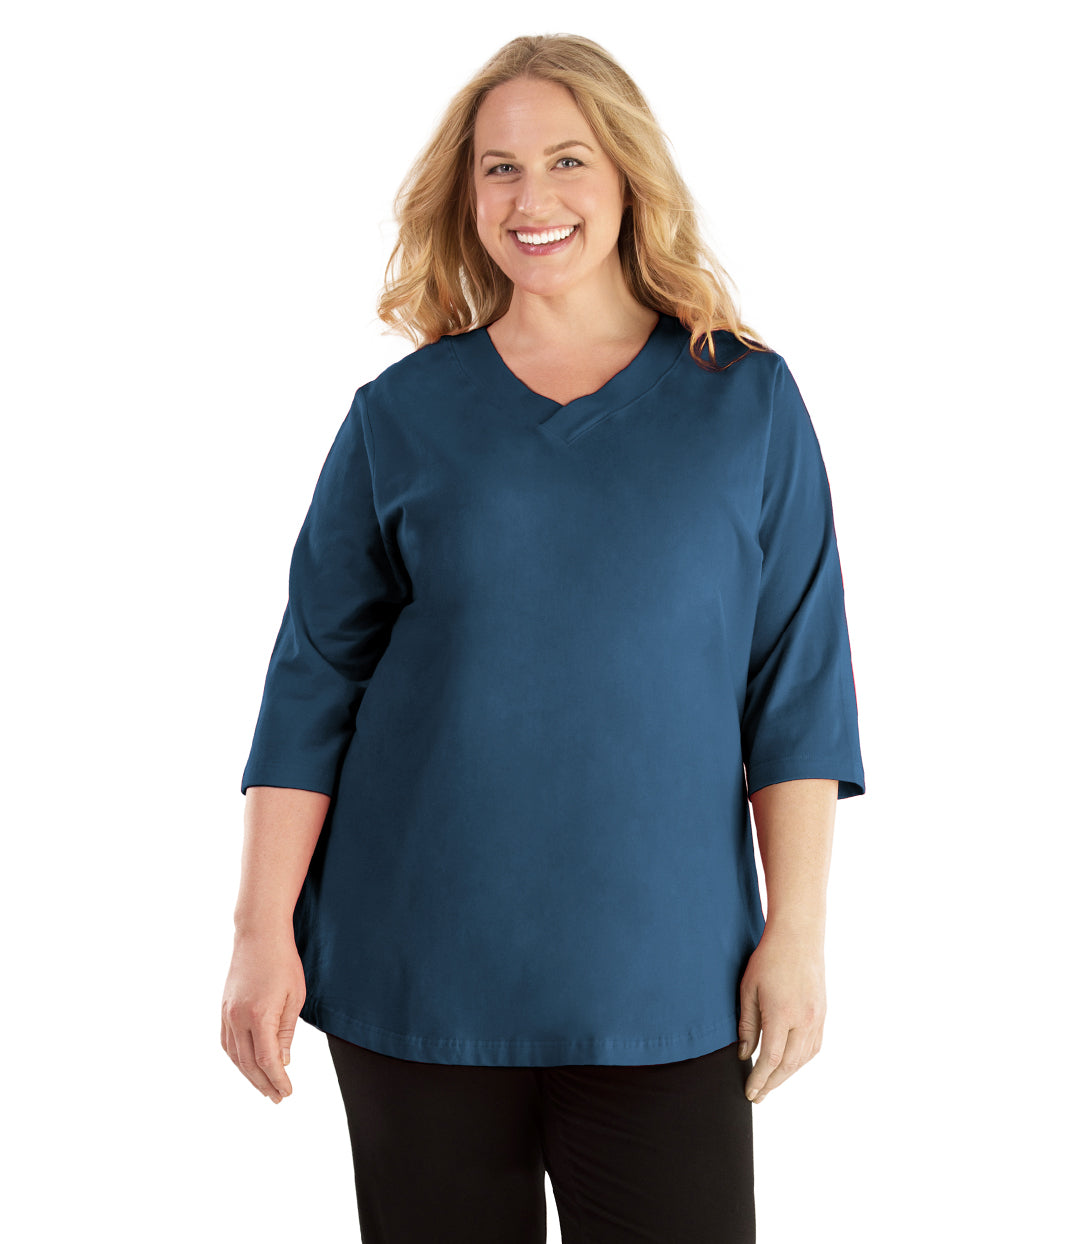 Stretch Naturals Vee Neck Top-Plus Size Activewear & Athletic Clothing-Hop Wo Trading Co Ltd-XL-FRENCH BLUE-JunoActive